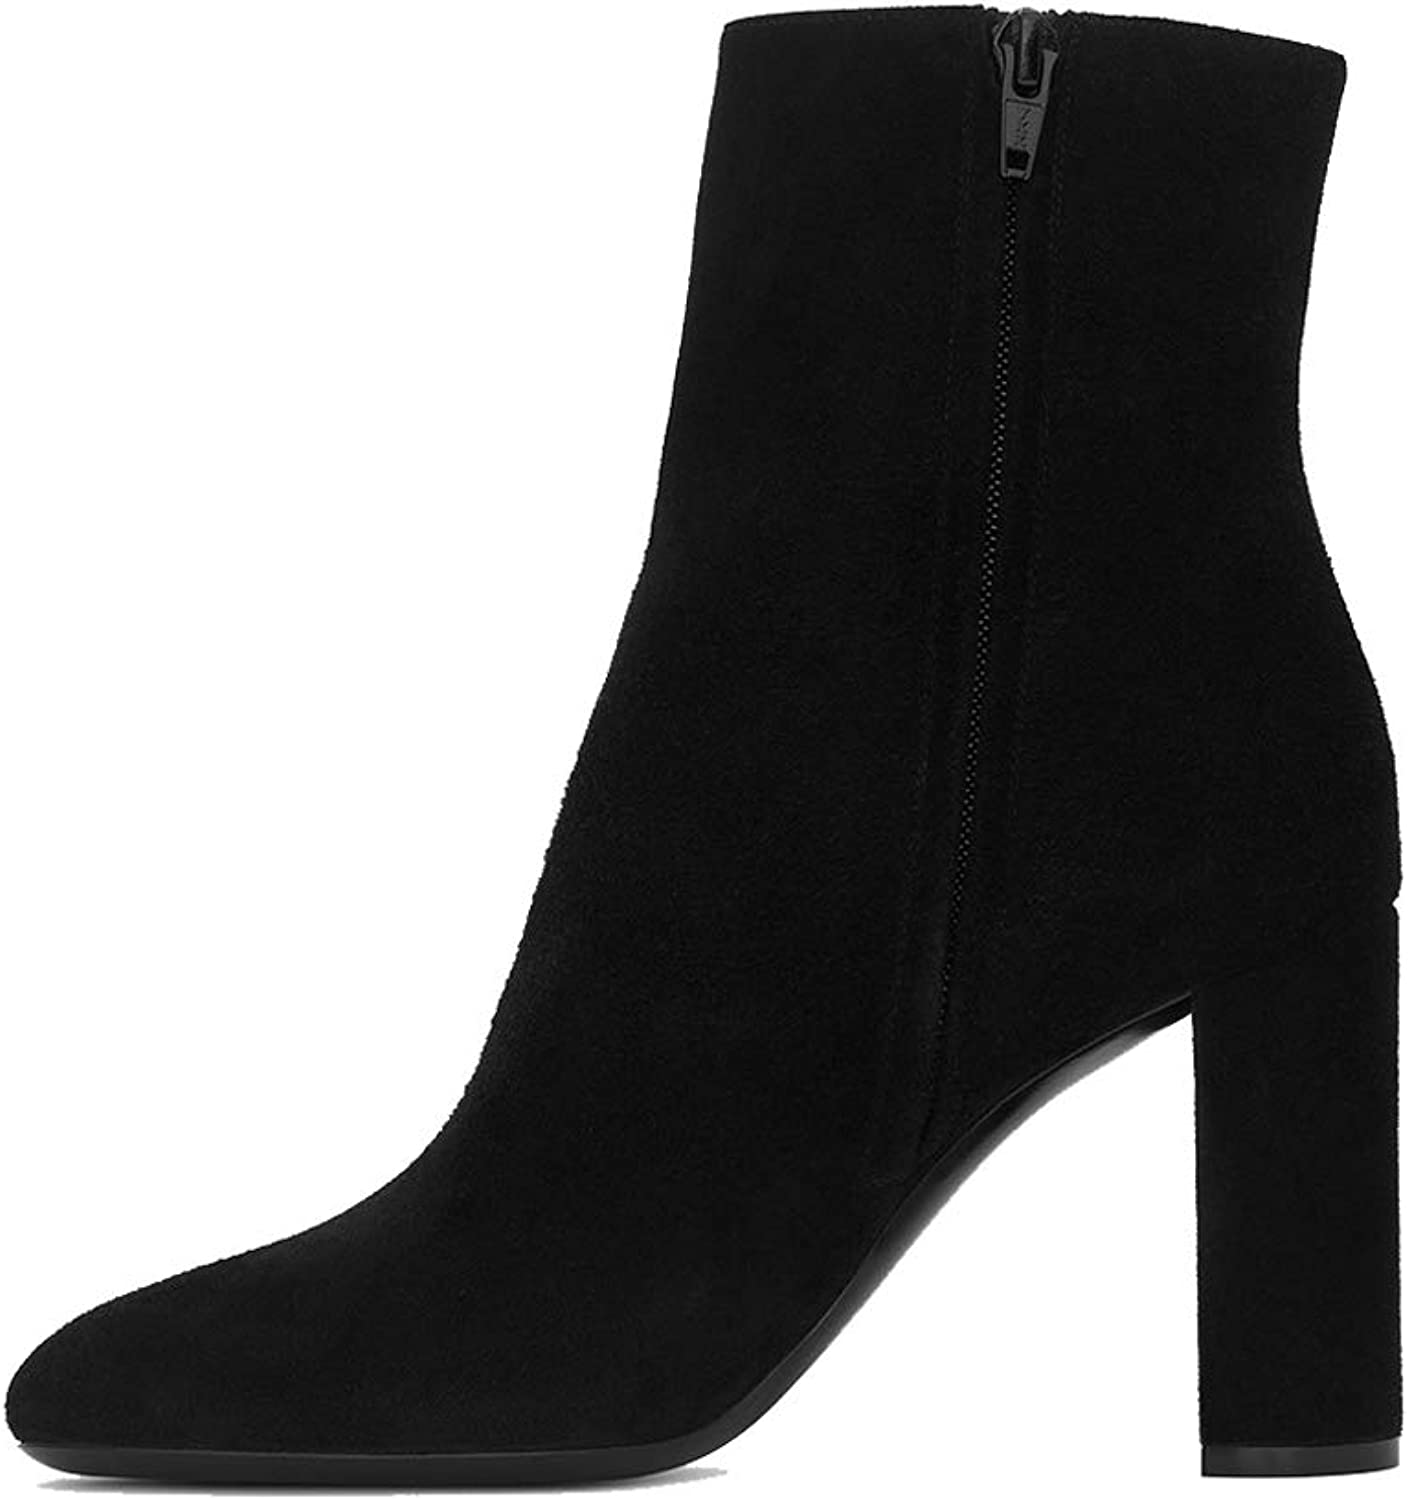 Booties, Thick and Suede Boots (Black),42